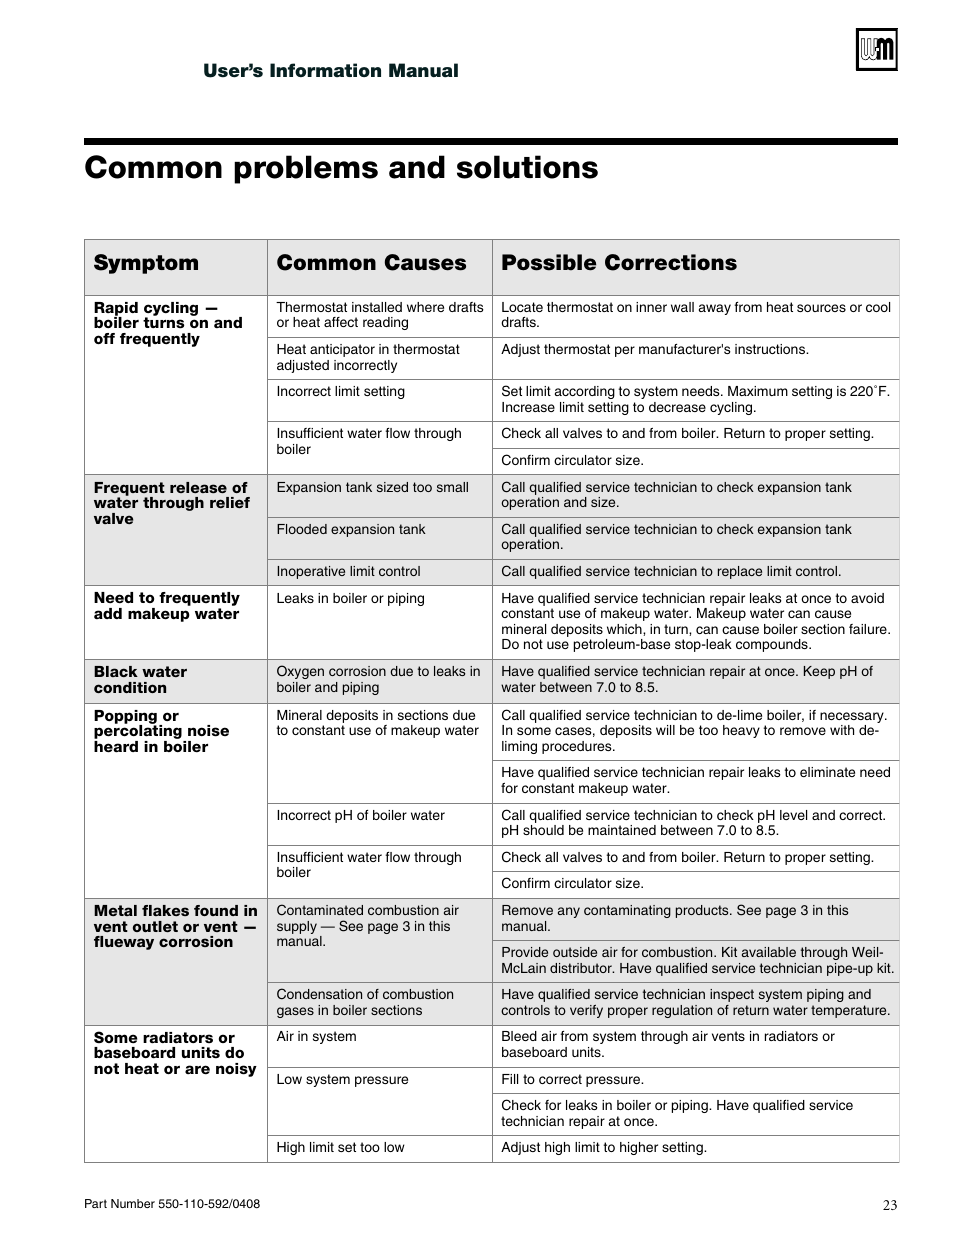 Common problems and solutions, Symptom common causes possible ...